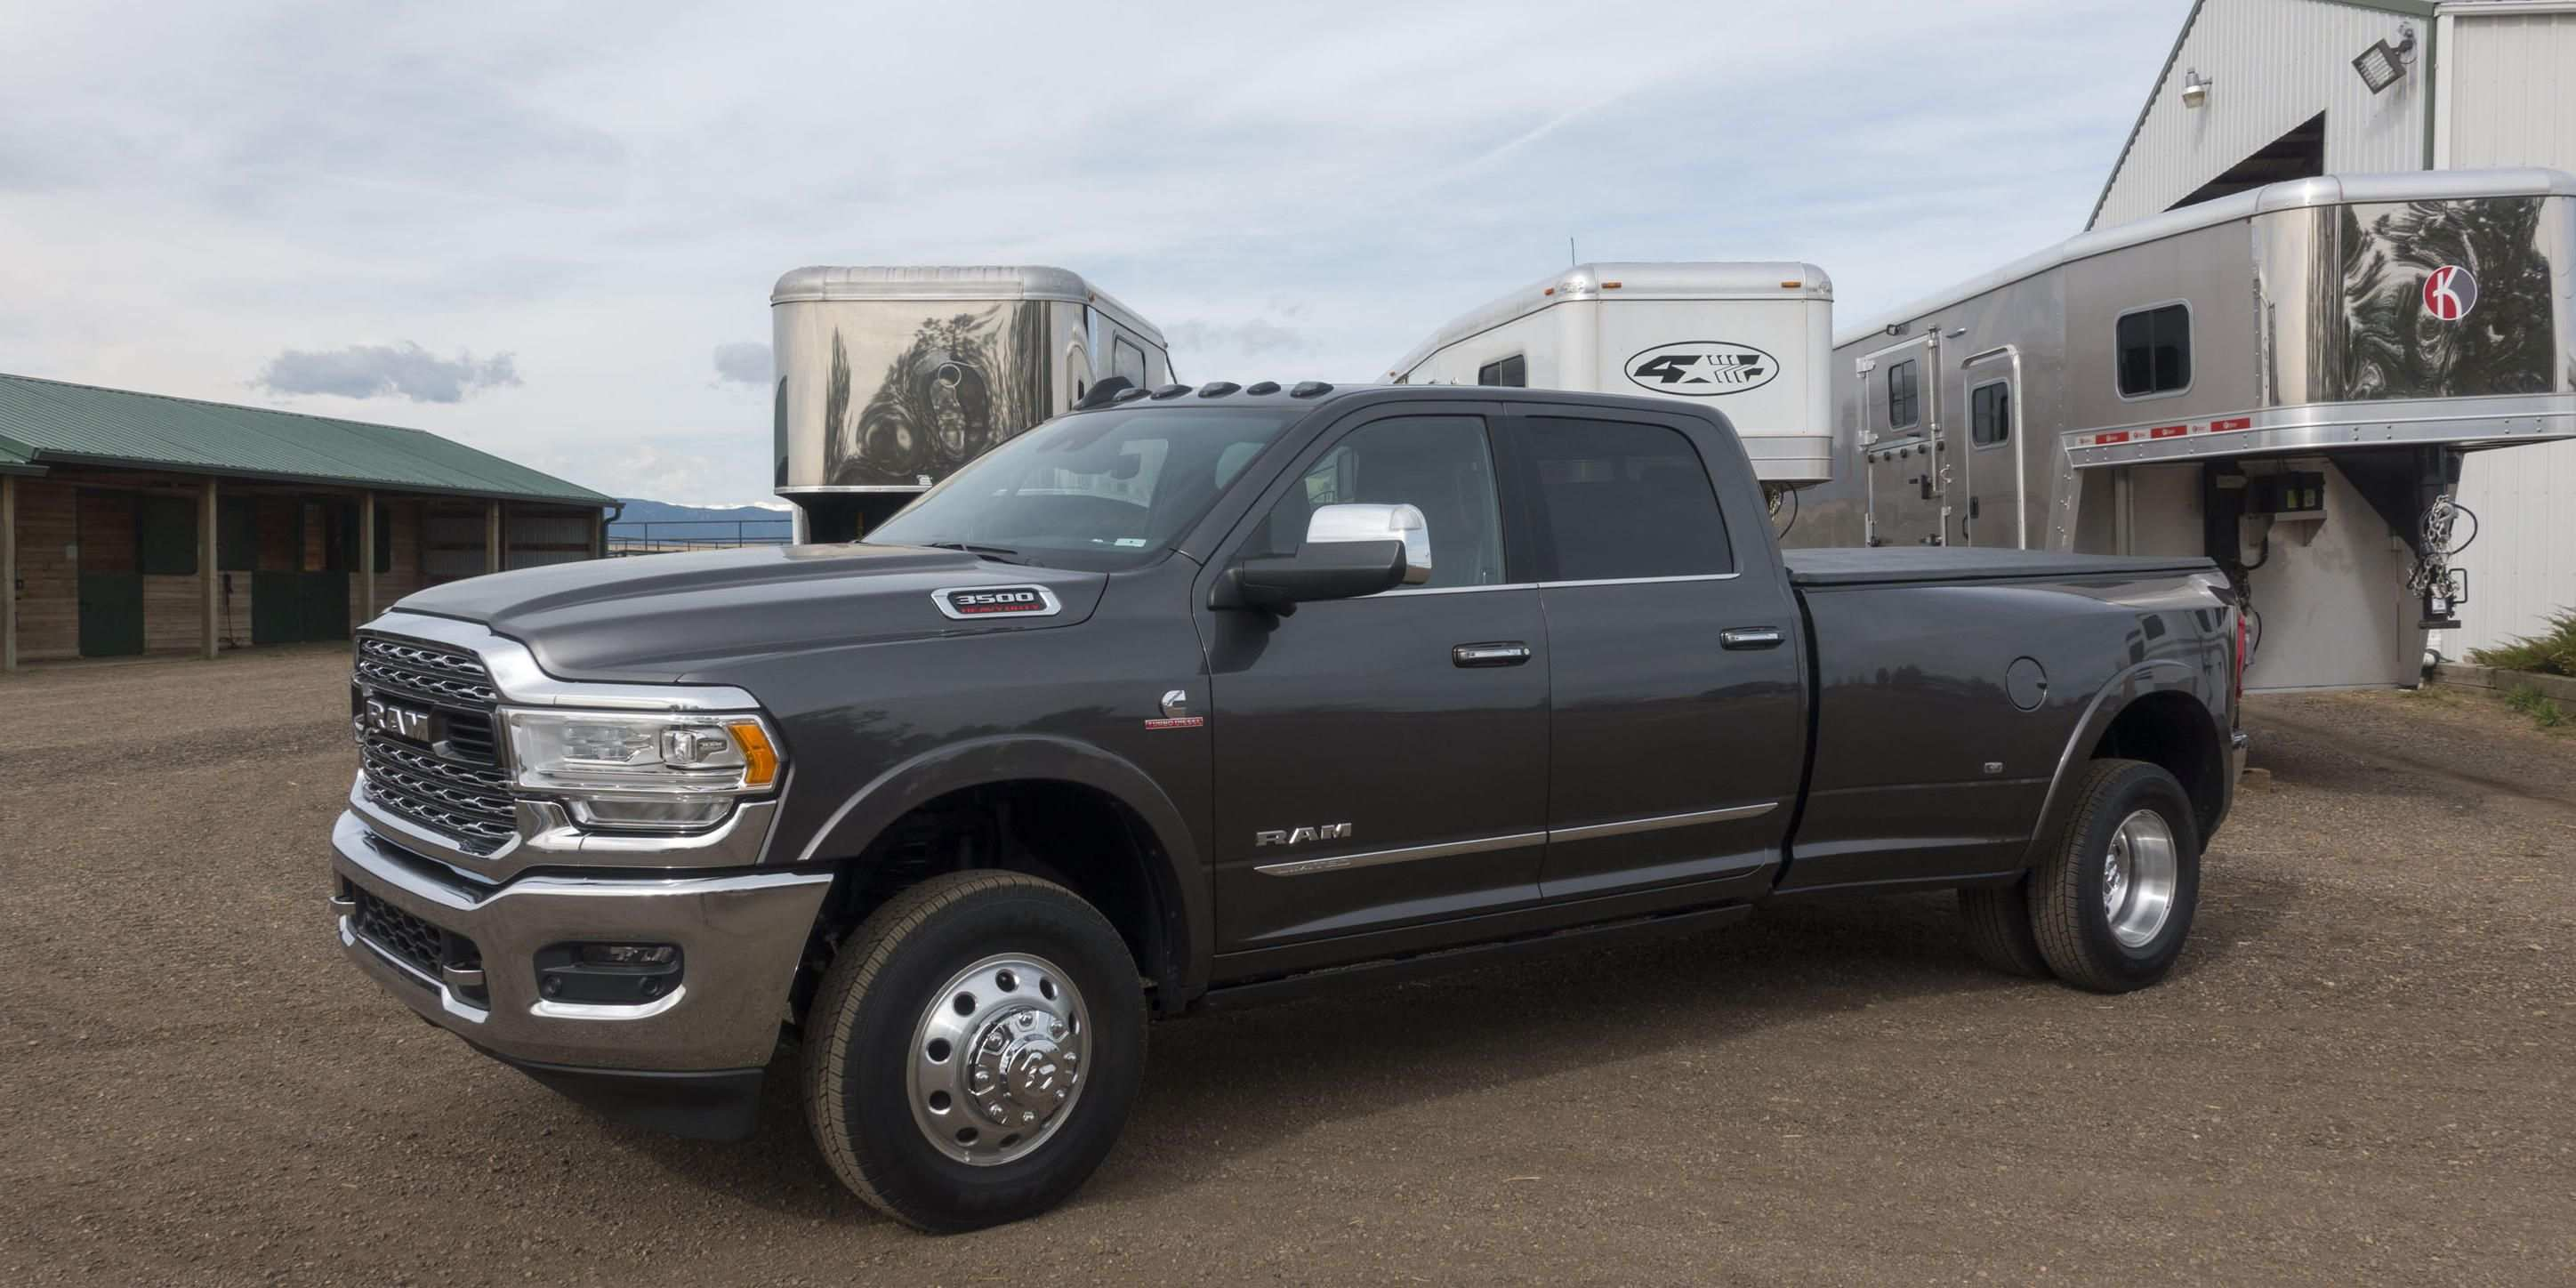 43 Best 2019 Ram 3500 Price And Release Date